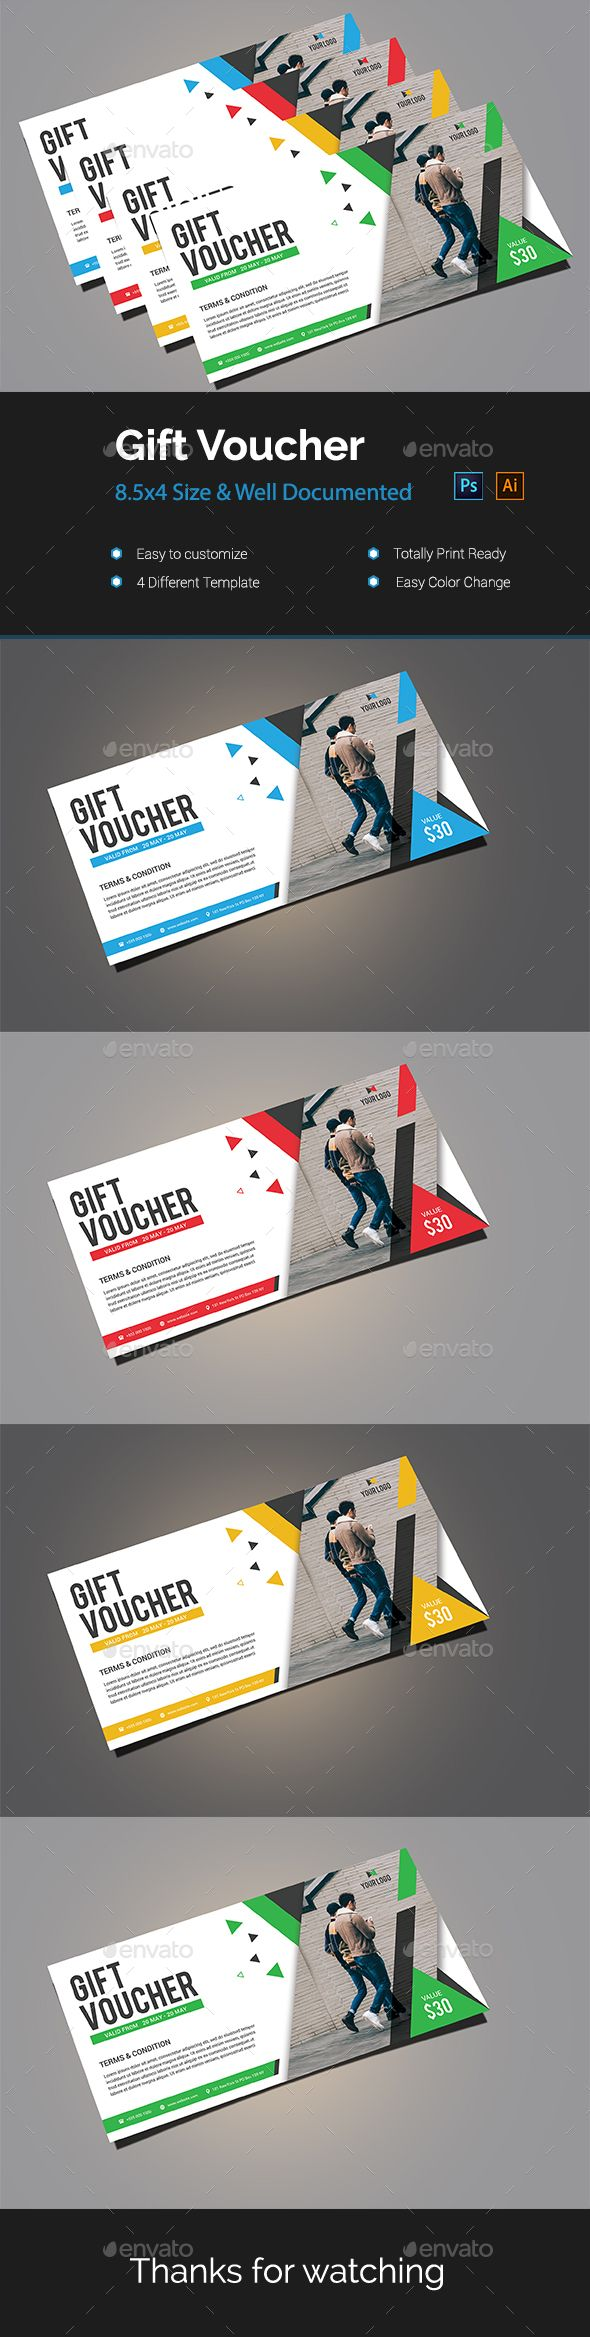 68 Best Gift Voucher Templates Images On Pinterest Gift Card Gifts